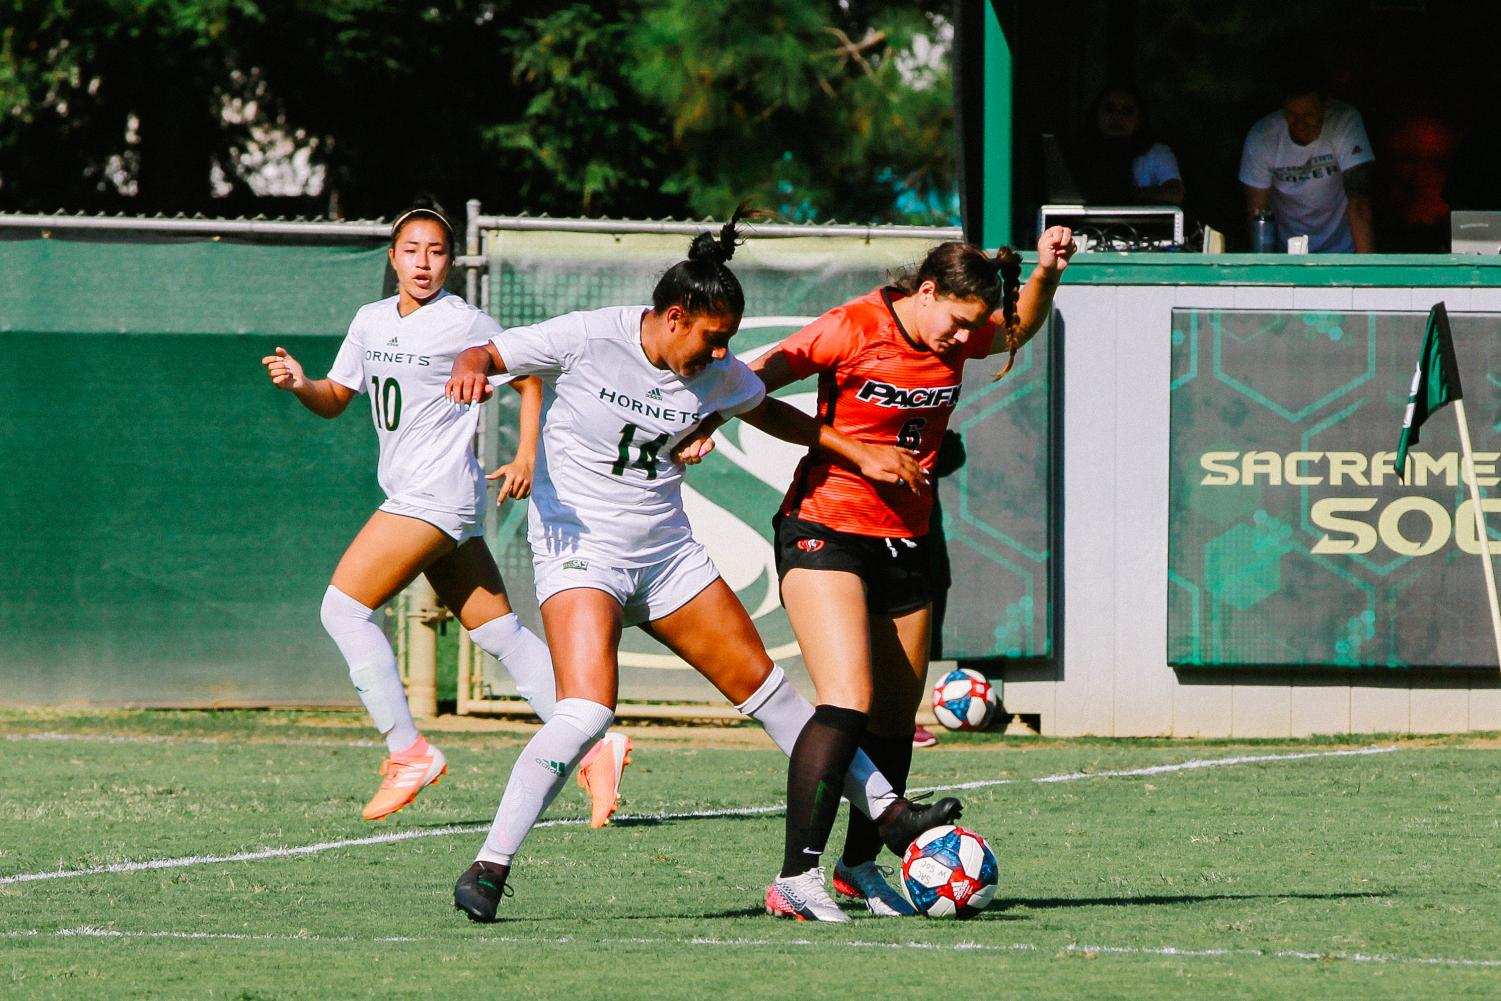 Sac+State+sophomore+forward+Erika+Sosa+steals+the+ball+against+Pacific+on+Thursday%2C+Sept.+5+at+Hornet+Field.+The+Hornets+defeated+the+Tigers+2-0.